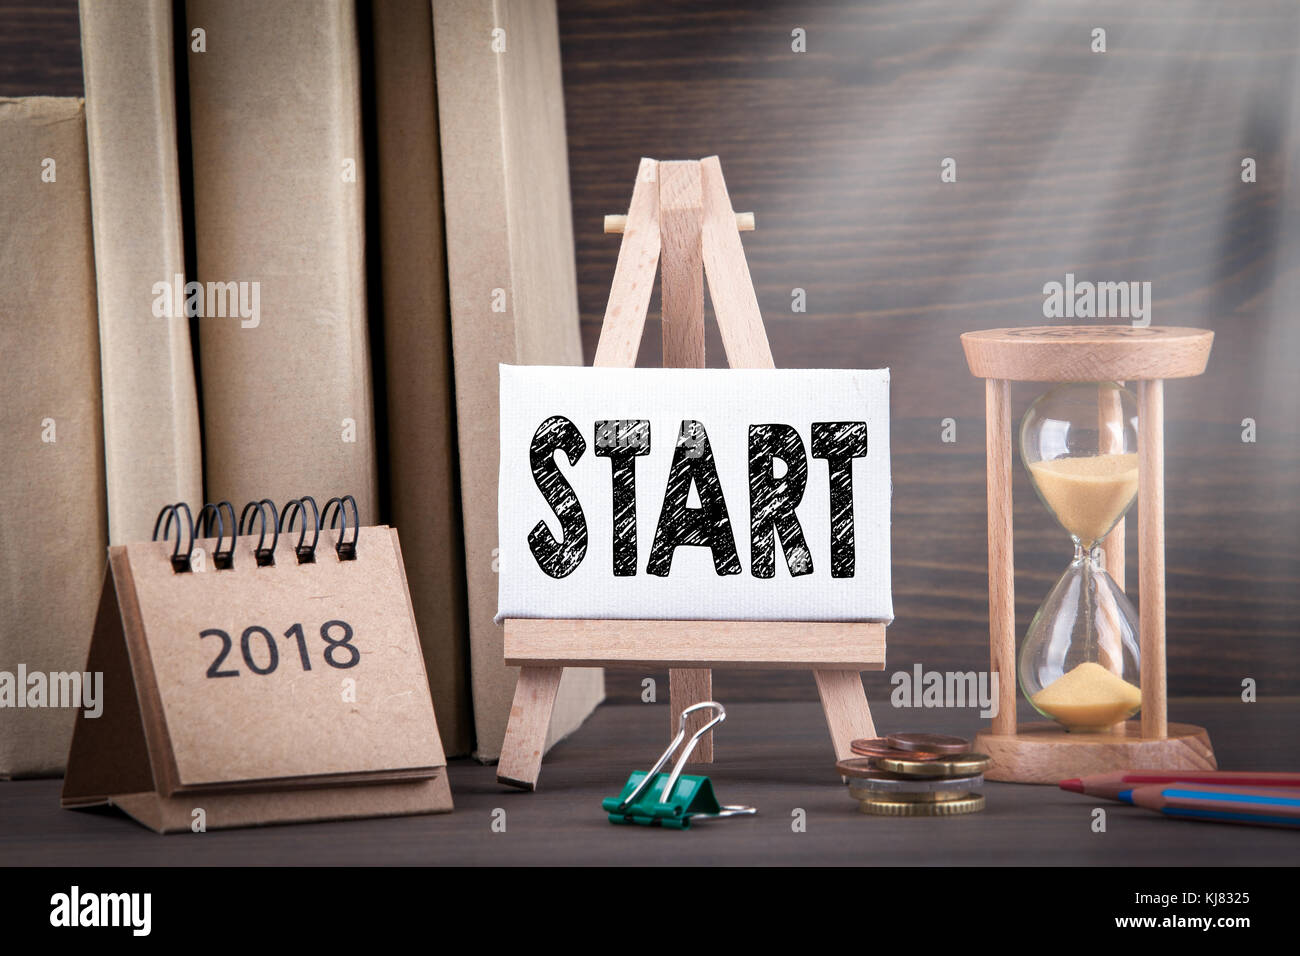 2018 start. Sandglass, hourglass or egg timer on wooden table - Stock Image